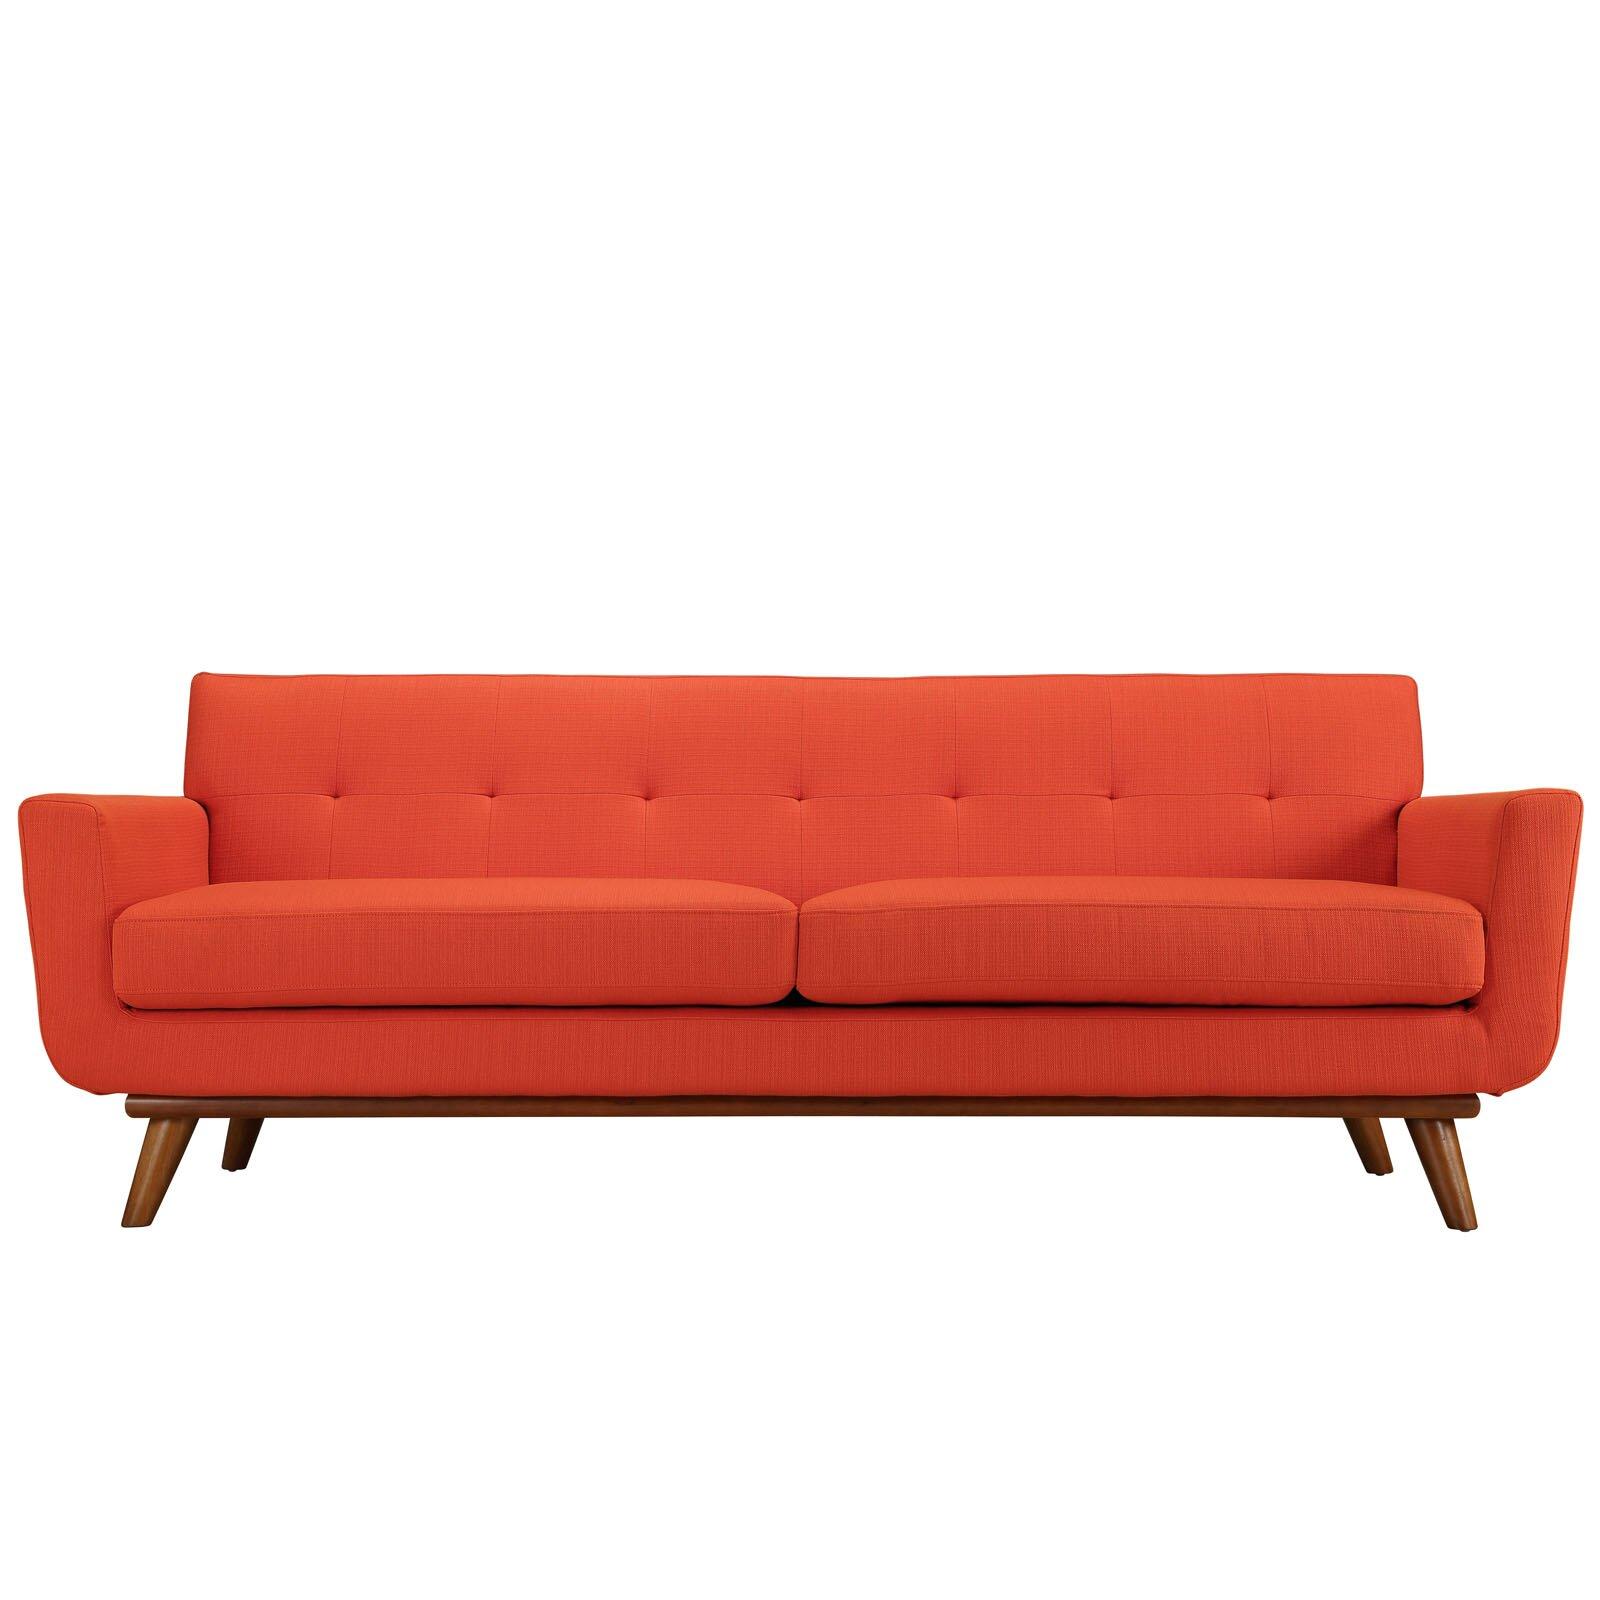 Corrigan studio saginaw upholstered sofa reviews wayfair for Cheap new furniture